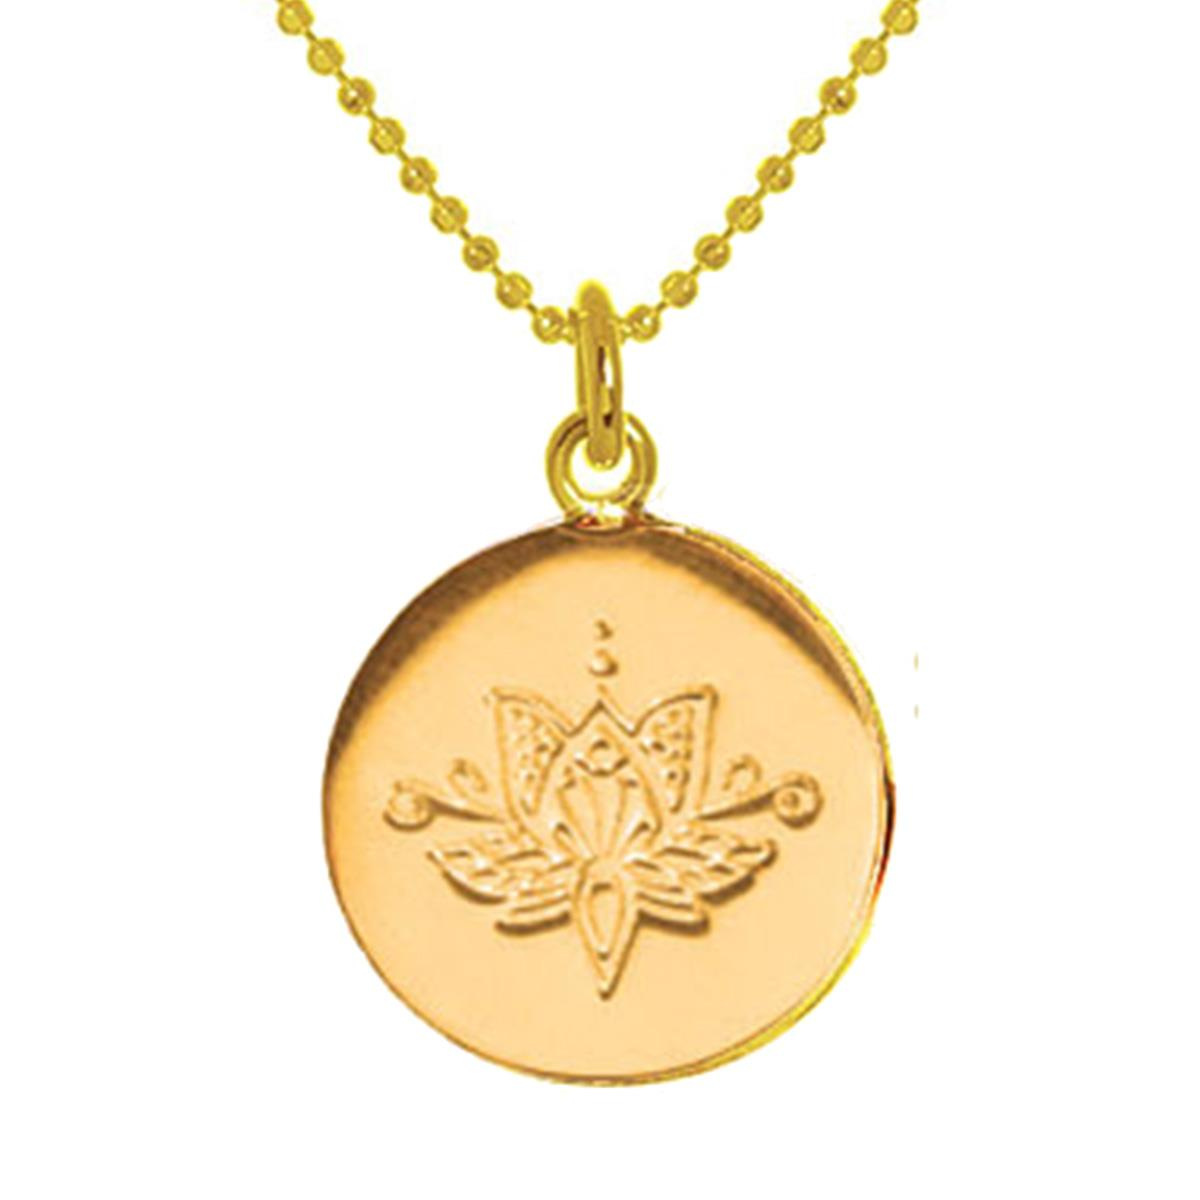 Lotus flower necklace my inner beauty shines through mantra lotus necklace jewellery with meaning izmirmasajfo